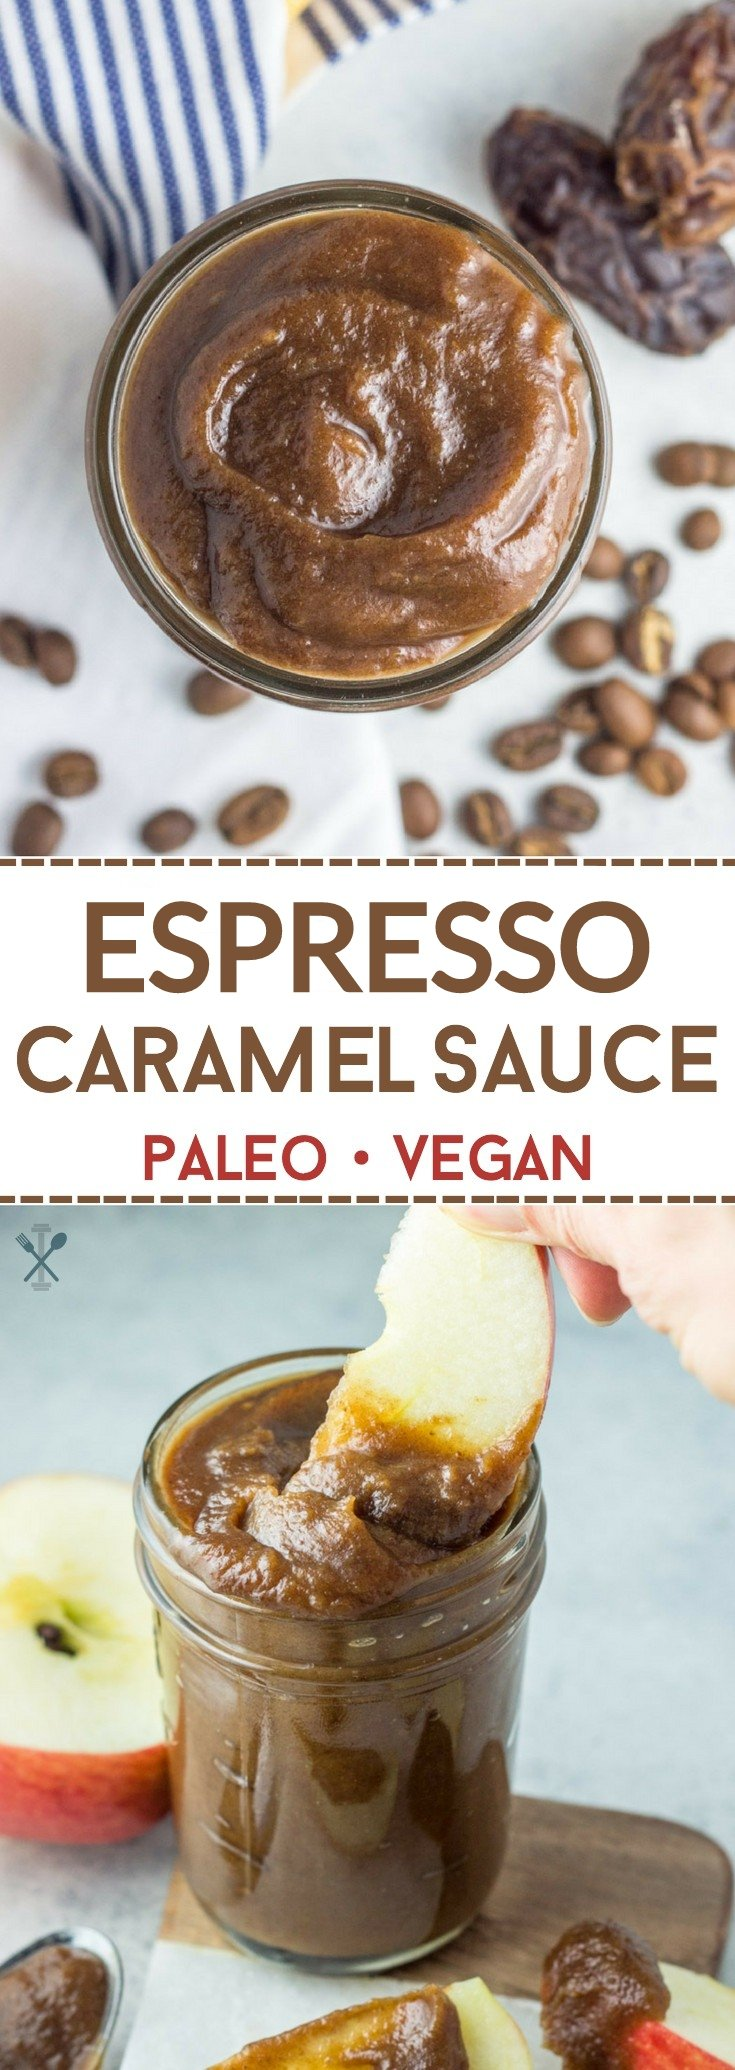 This healthy espresso caramel sauce is paleo and vegan, made with just 3 ingredients! A highly addicting spread or dip.